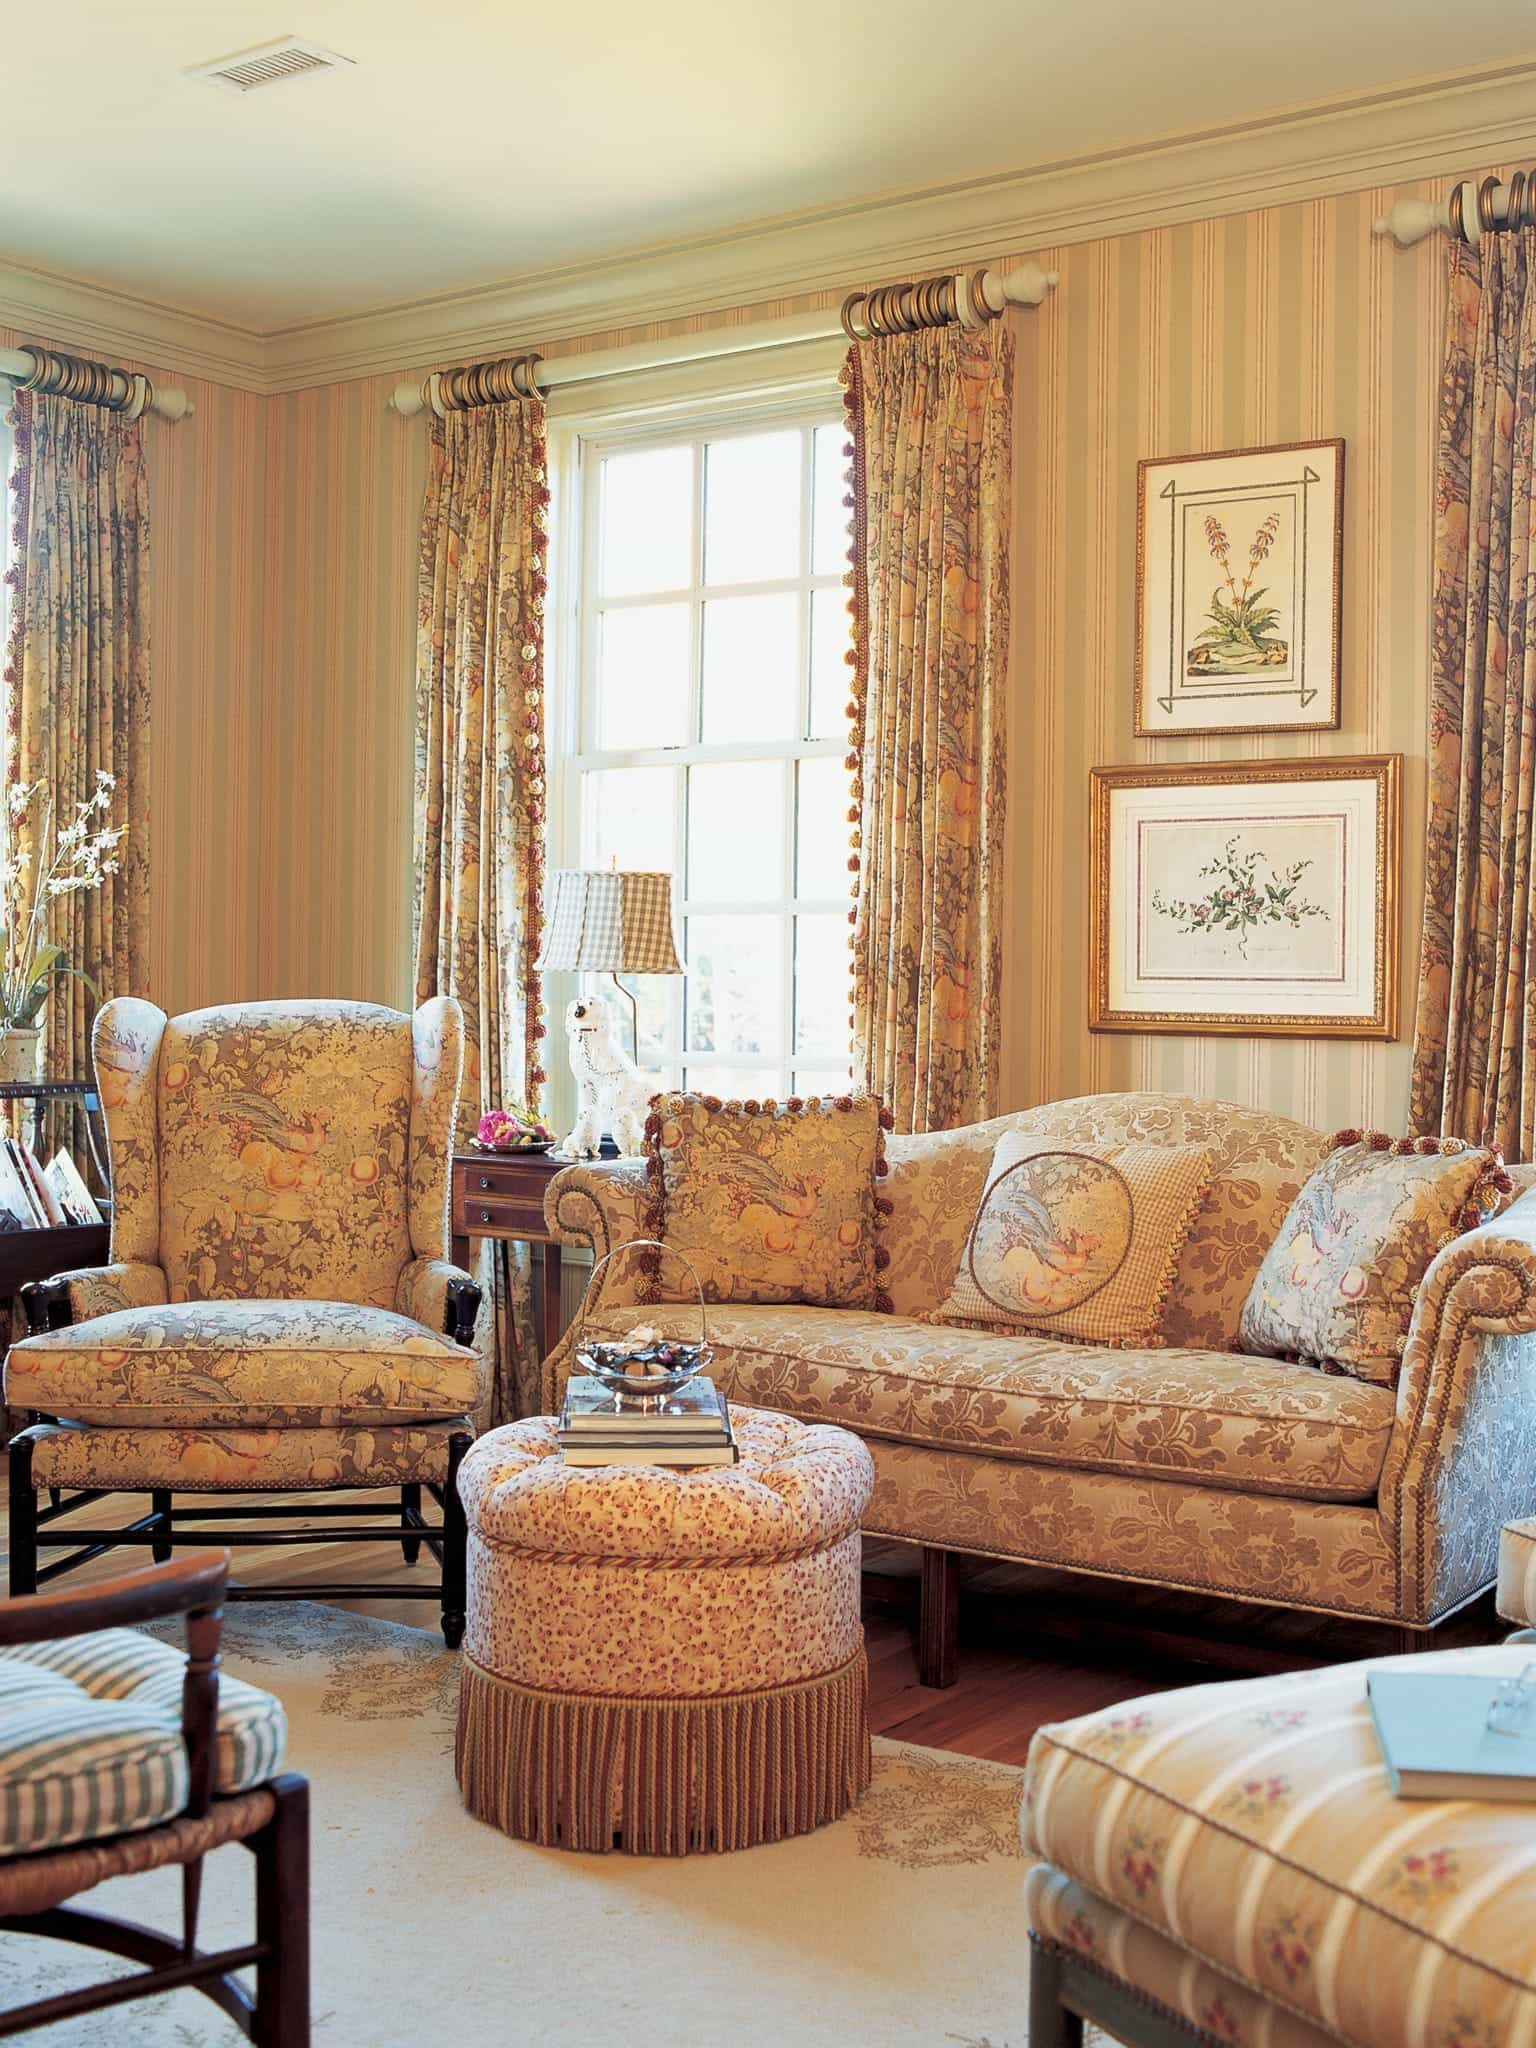 Victorian Living Room Decoration With Traditional Pattern Royal Sofa (Image 29 of 31)